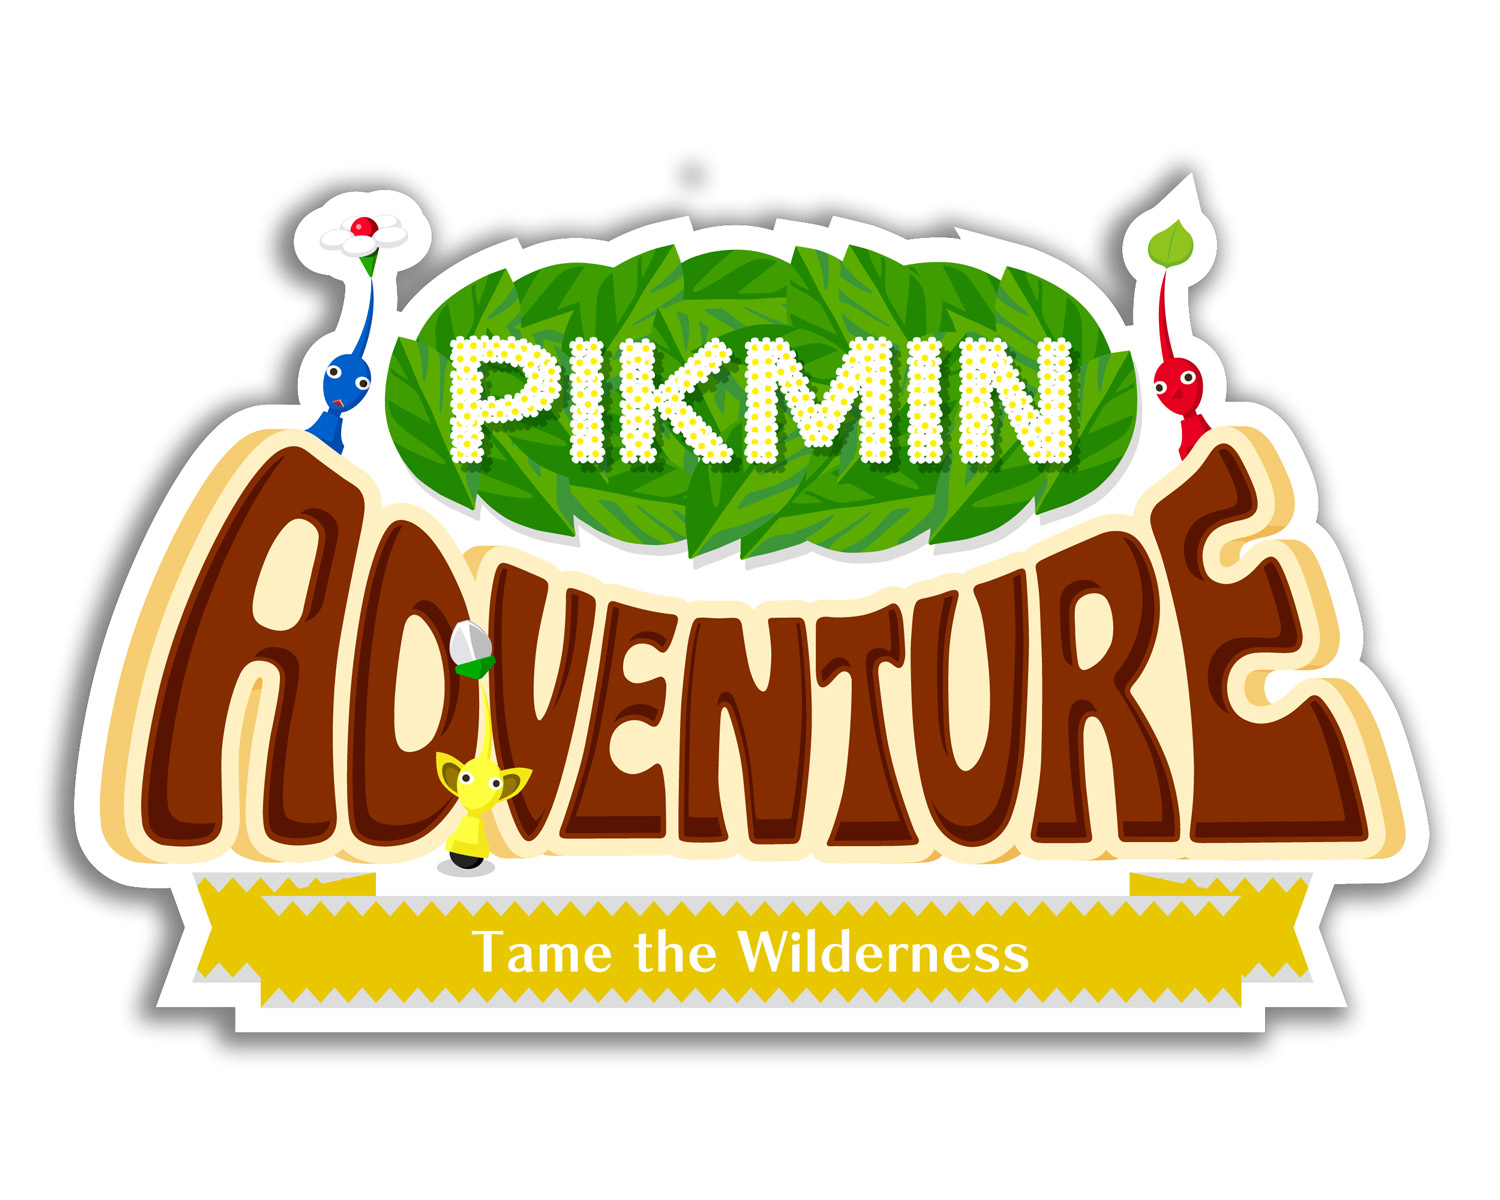 Wiiu_nland_logo_pikminadv_wp